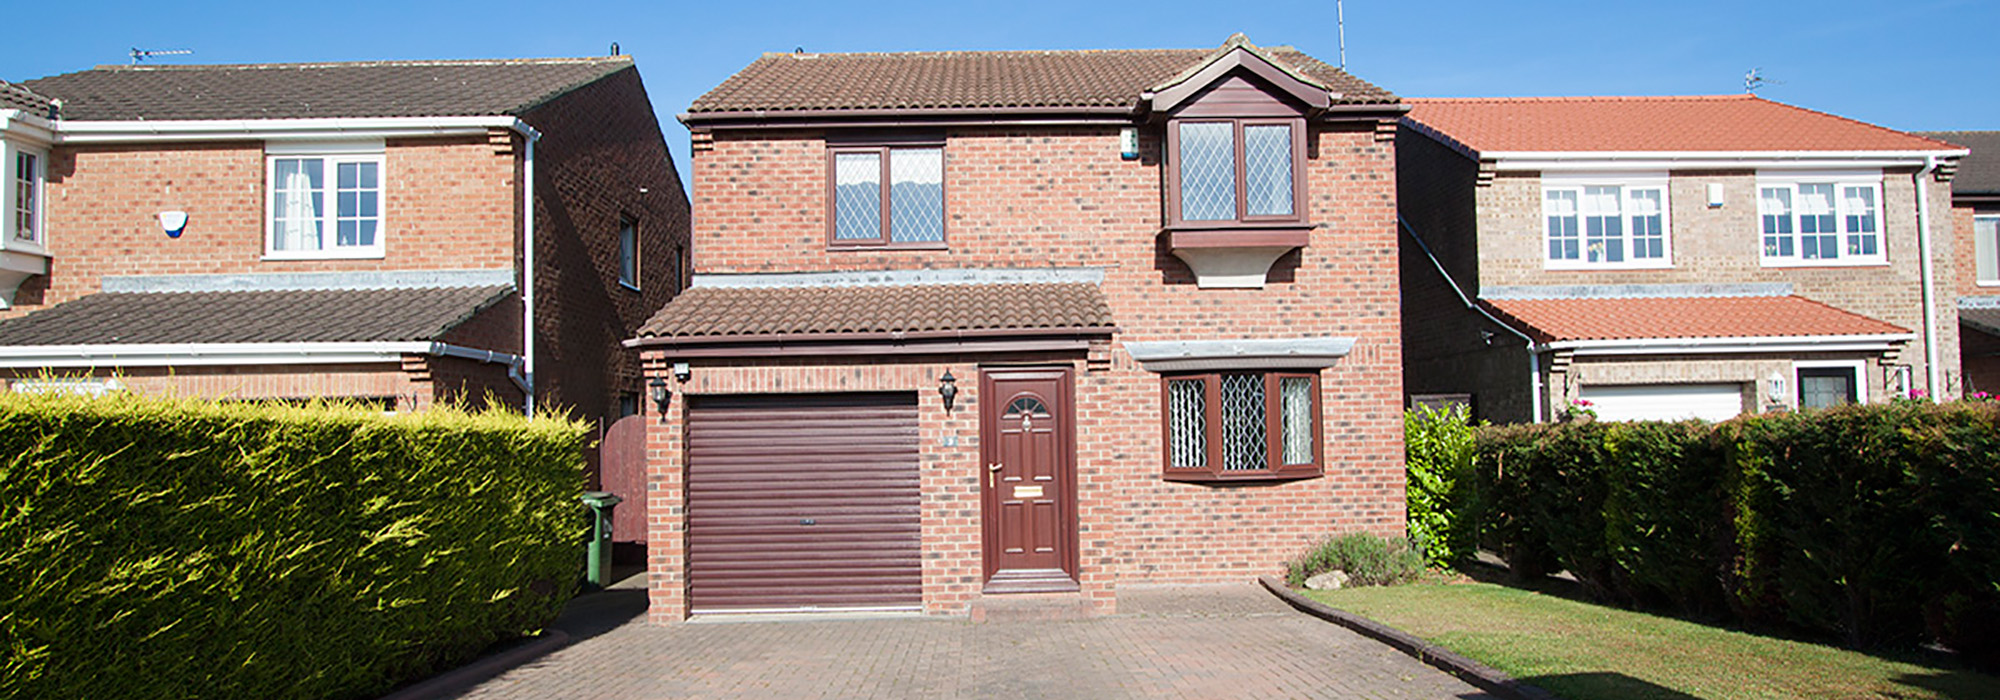 Chelston Close Hartlepool *REDUCED* £200,000